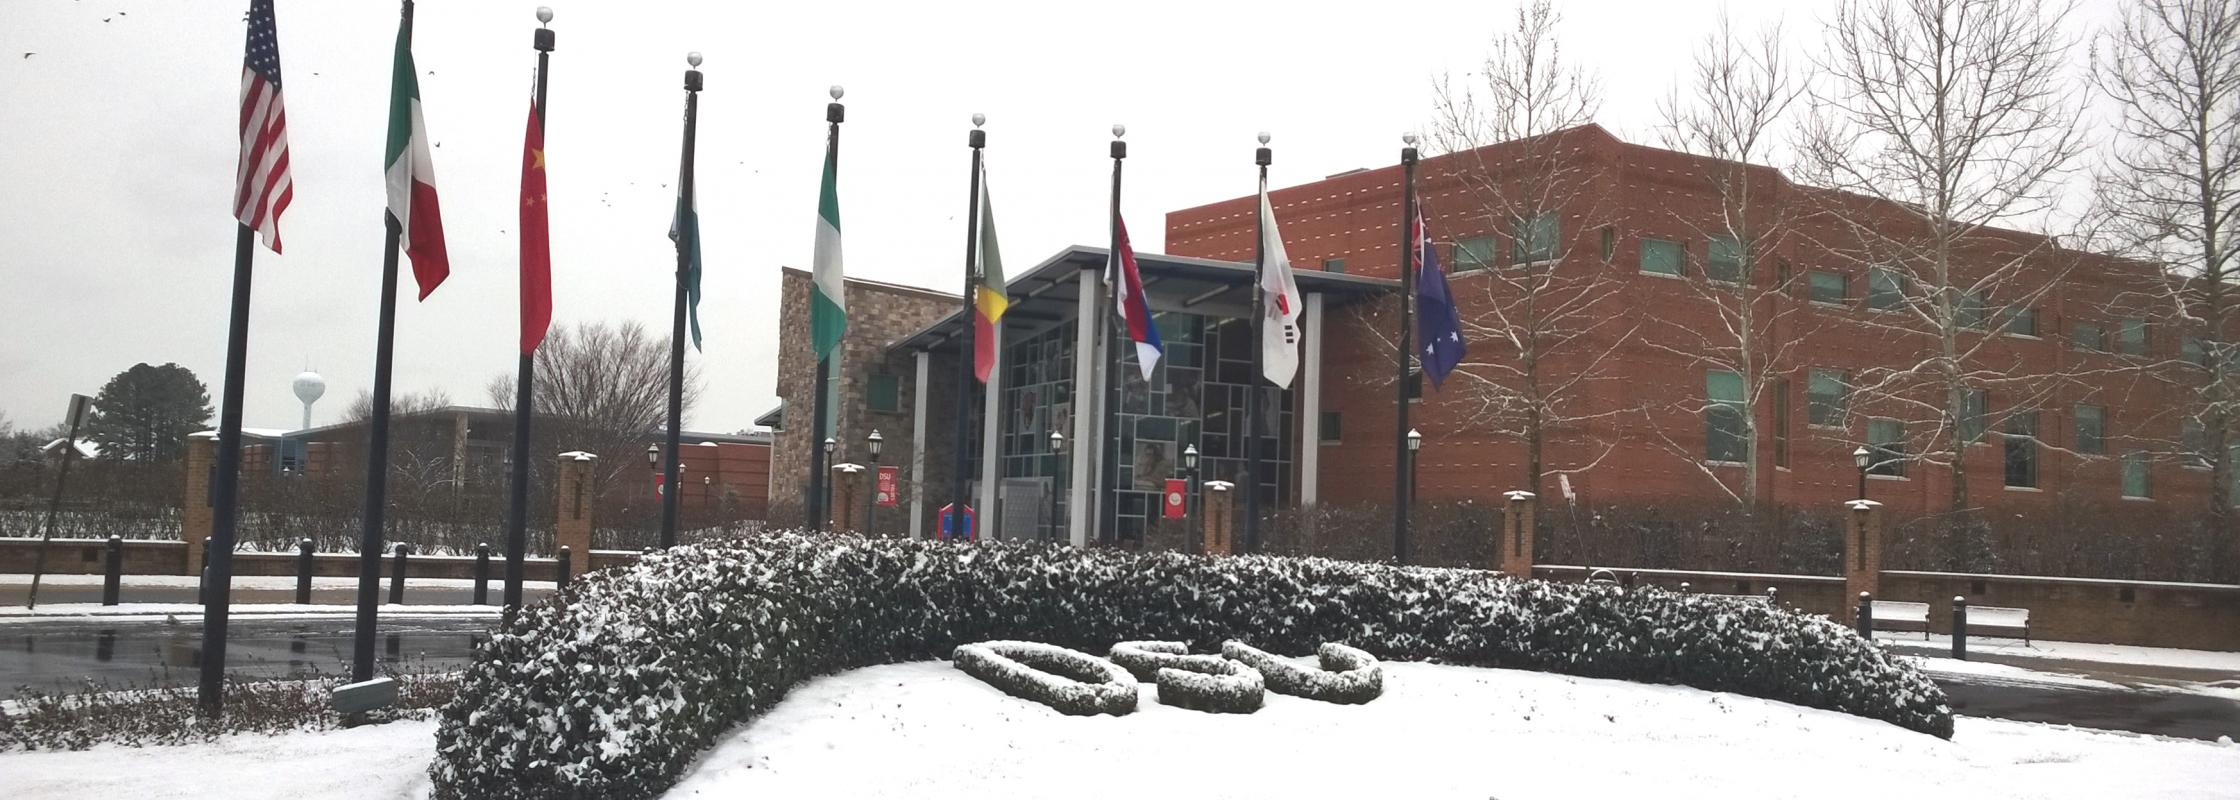 Snow at DSU